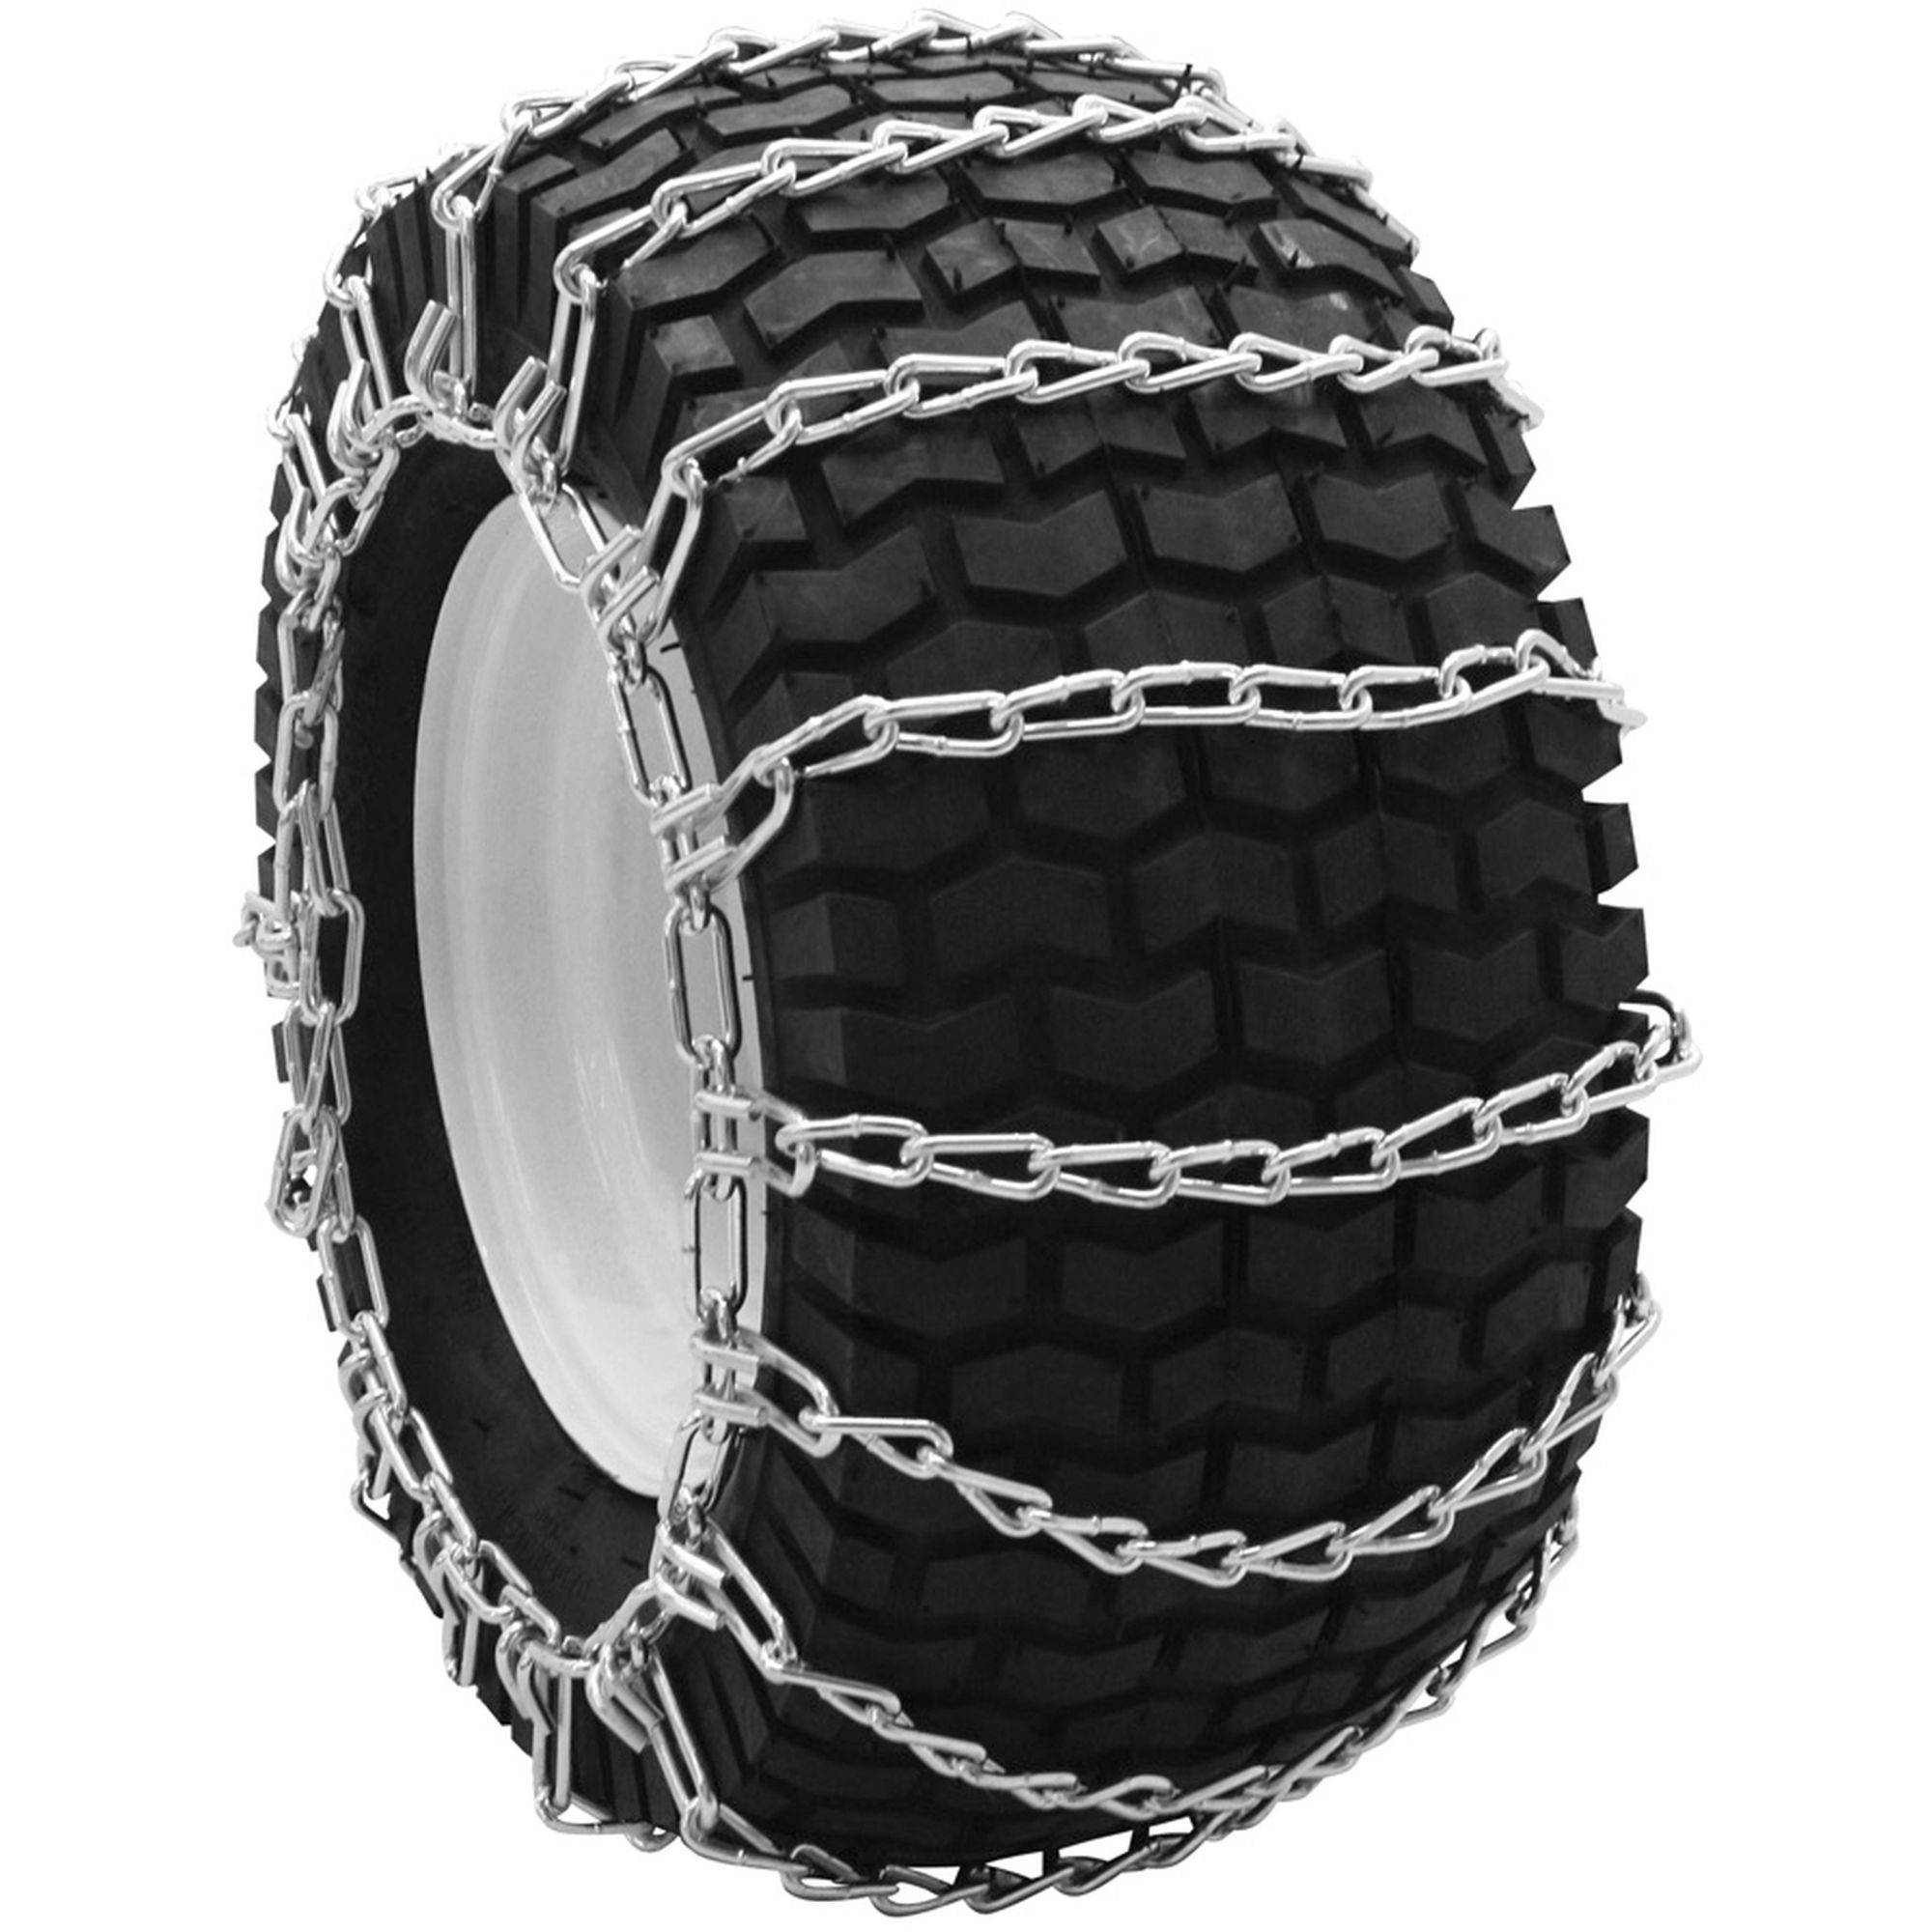 Snowblower and Lawn Tractor Tire Chains, 23X10.50X12, 2 Link Spacing by Peerless Chain Company